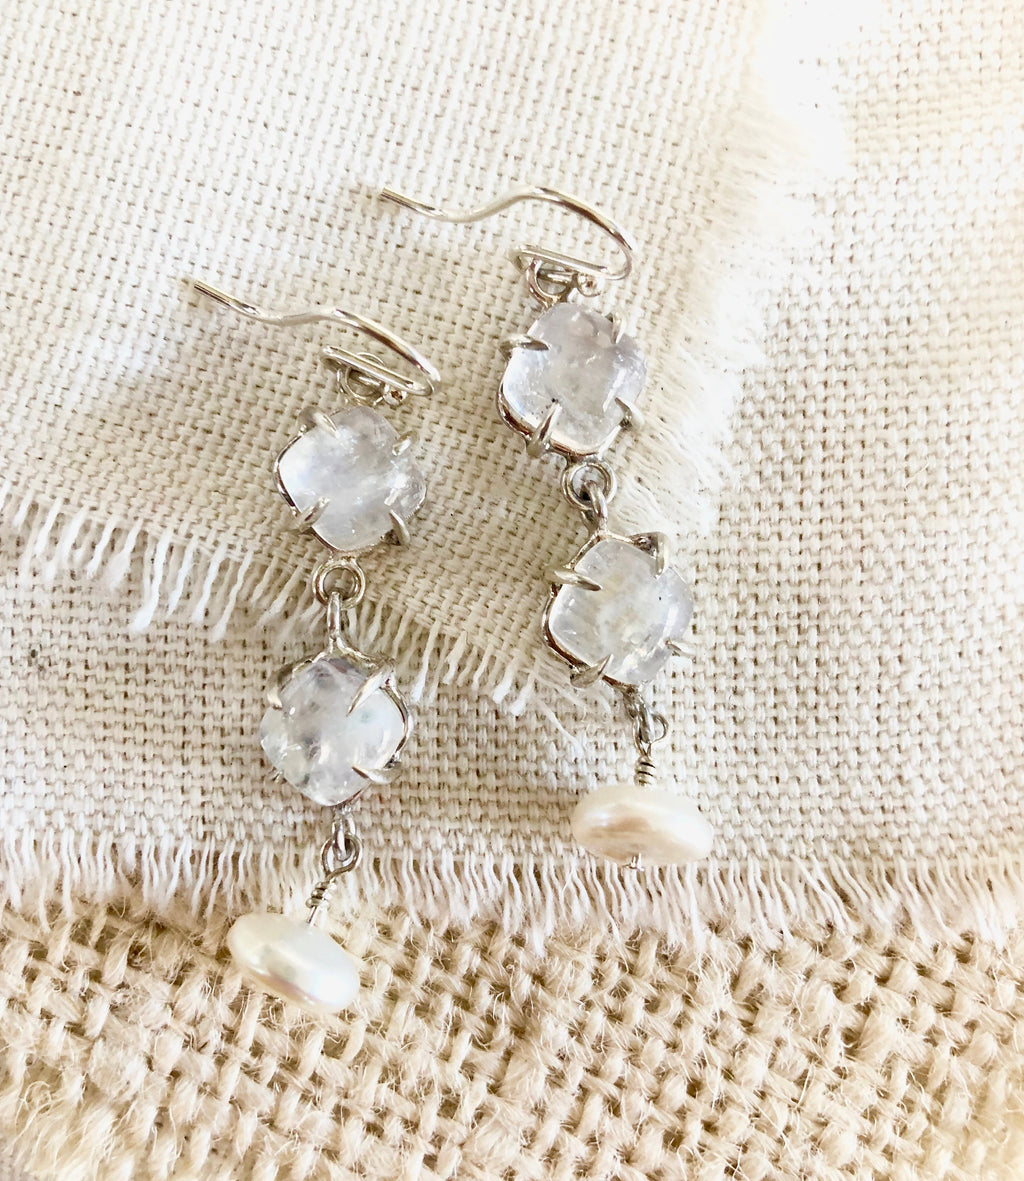 Moonstone & Pearl Earrings, Moonstone Earrings, Moonstone Jewelry, Moonstone Dangles